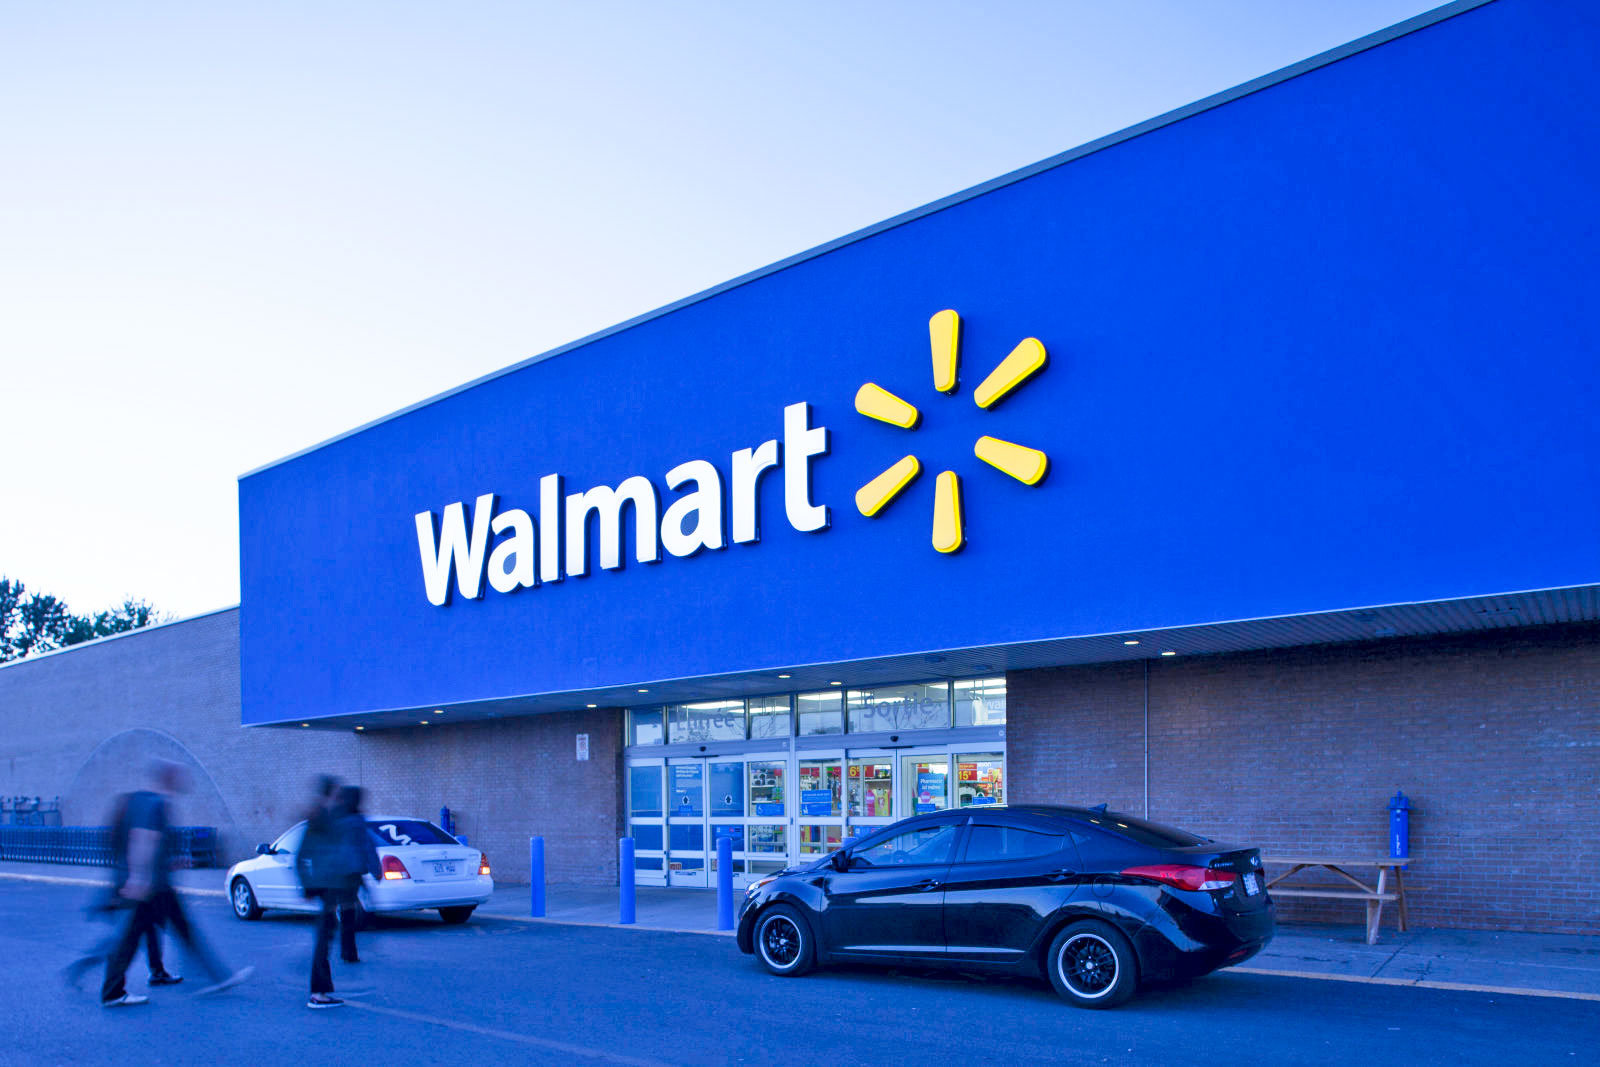 Walmart is an American multinational retail corporation that operates a chain of hypermarkets, discount department stores, and grocery stores.